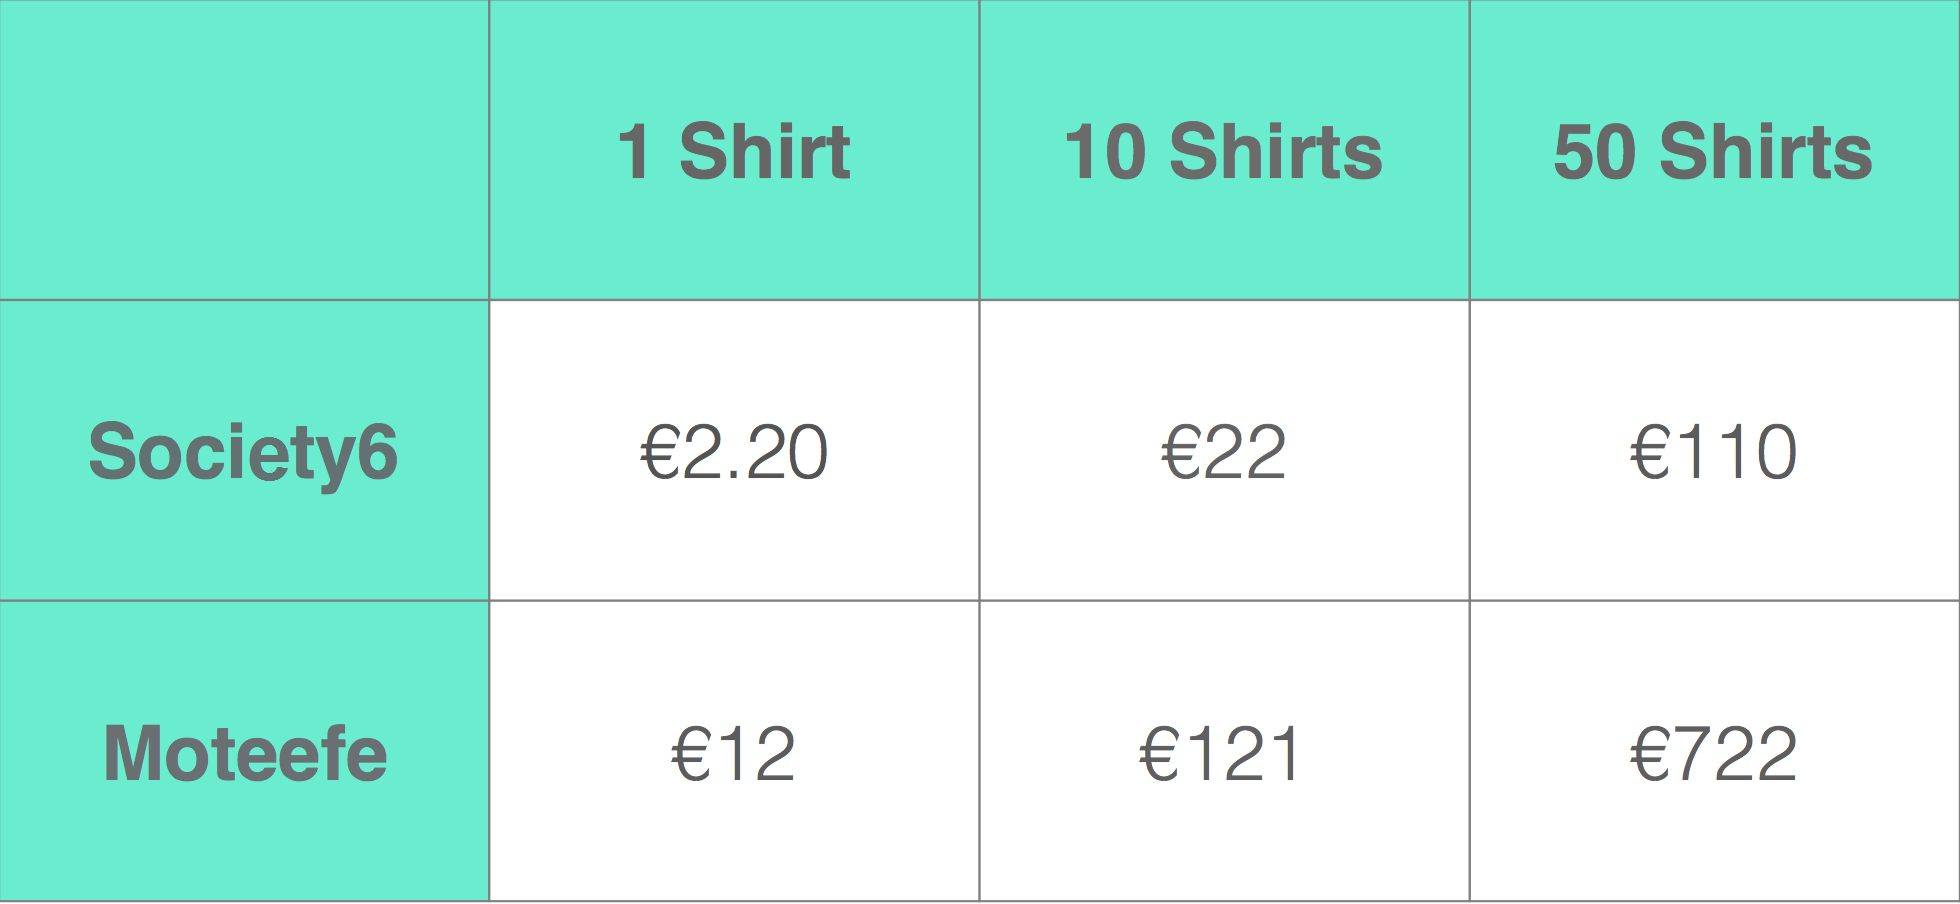 Moteefe vs Society6 pricing